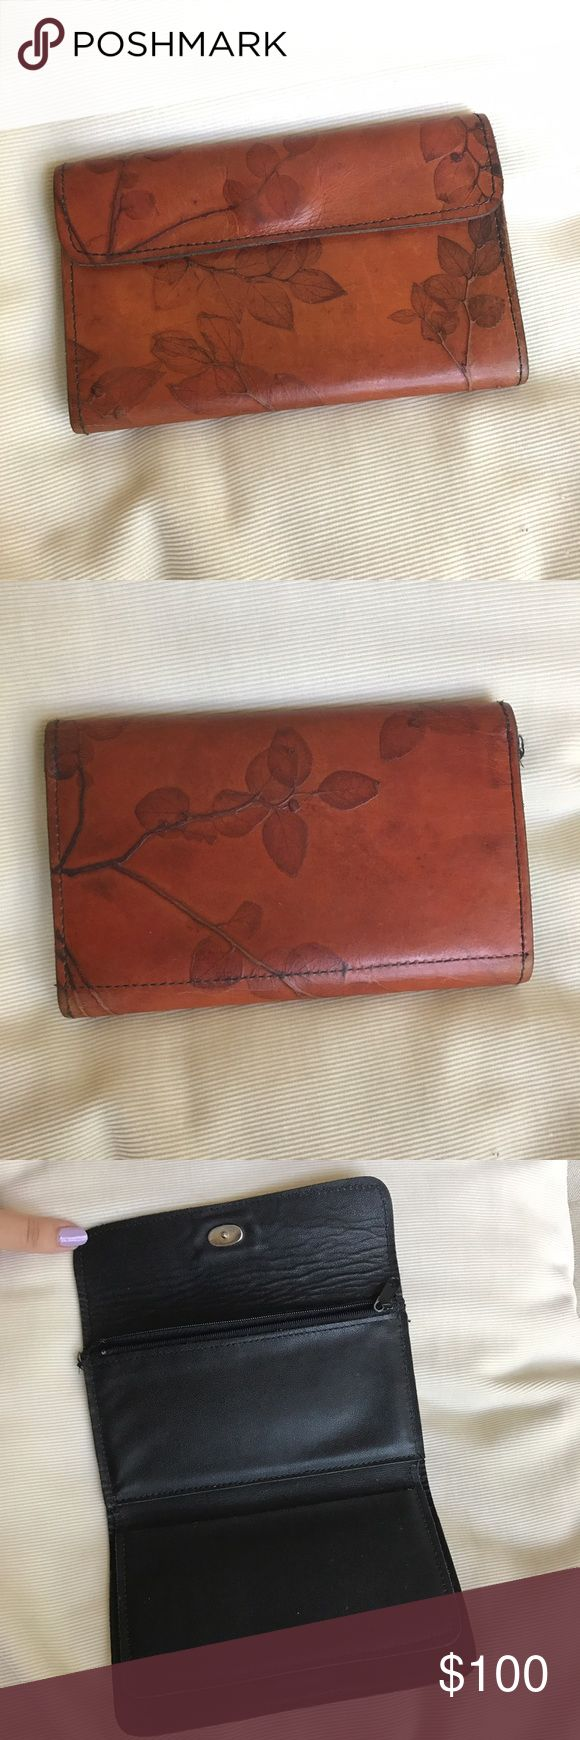 CL Whiting Handcrafted Leather Wallet Handmade leather women's secretariat from the beautiful collection by CL Whiting. Each leather piece is handcrafted and artfully created so no two pieces are alike. Brown leather outer and black leather interior. Portions of the leaf design show wear and some of the leather shoes wrinkling. Price firm. CL Whiting Bags Wallets